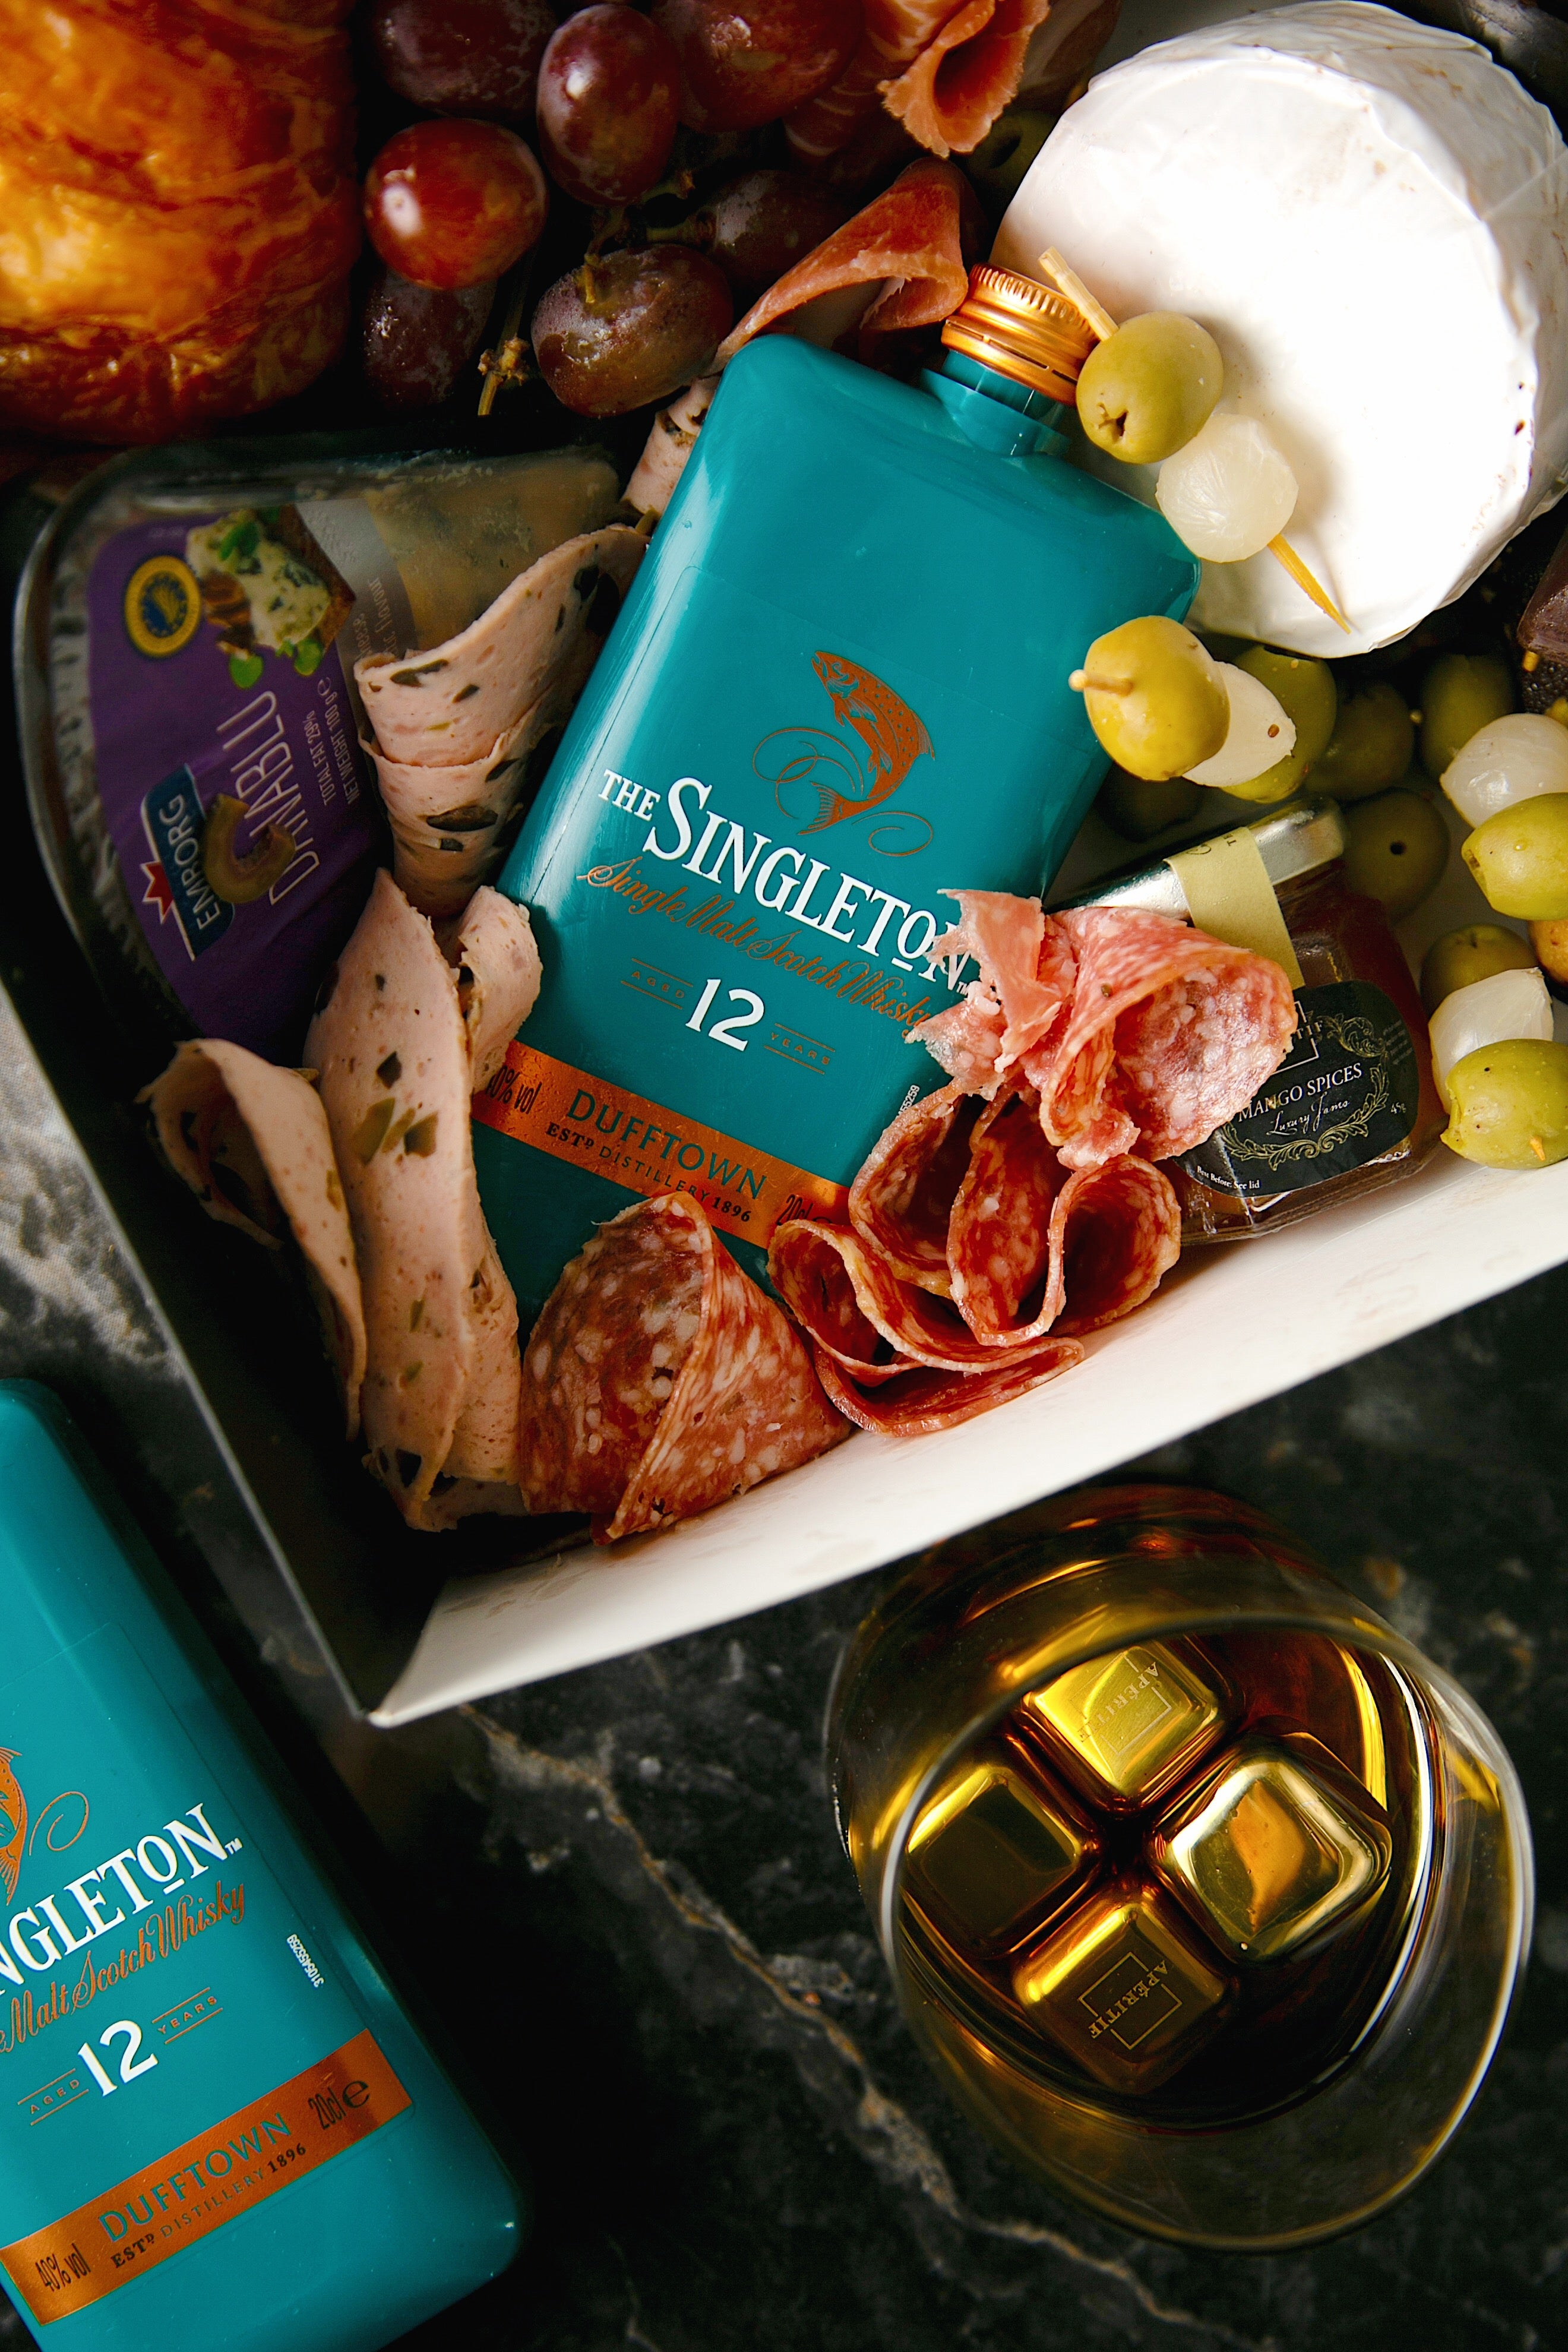 Sweet and Savory box with Singleton Whisky